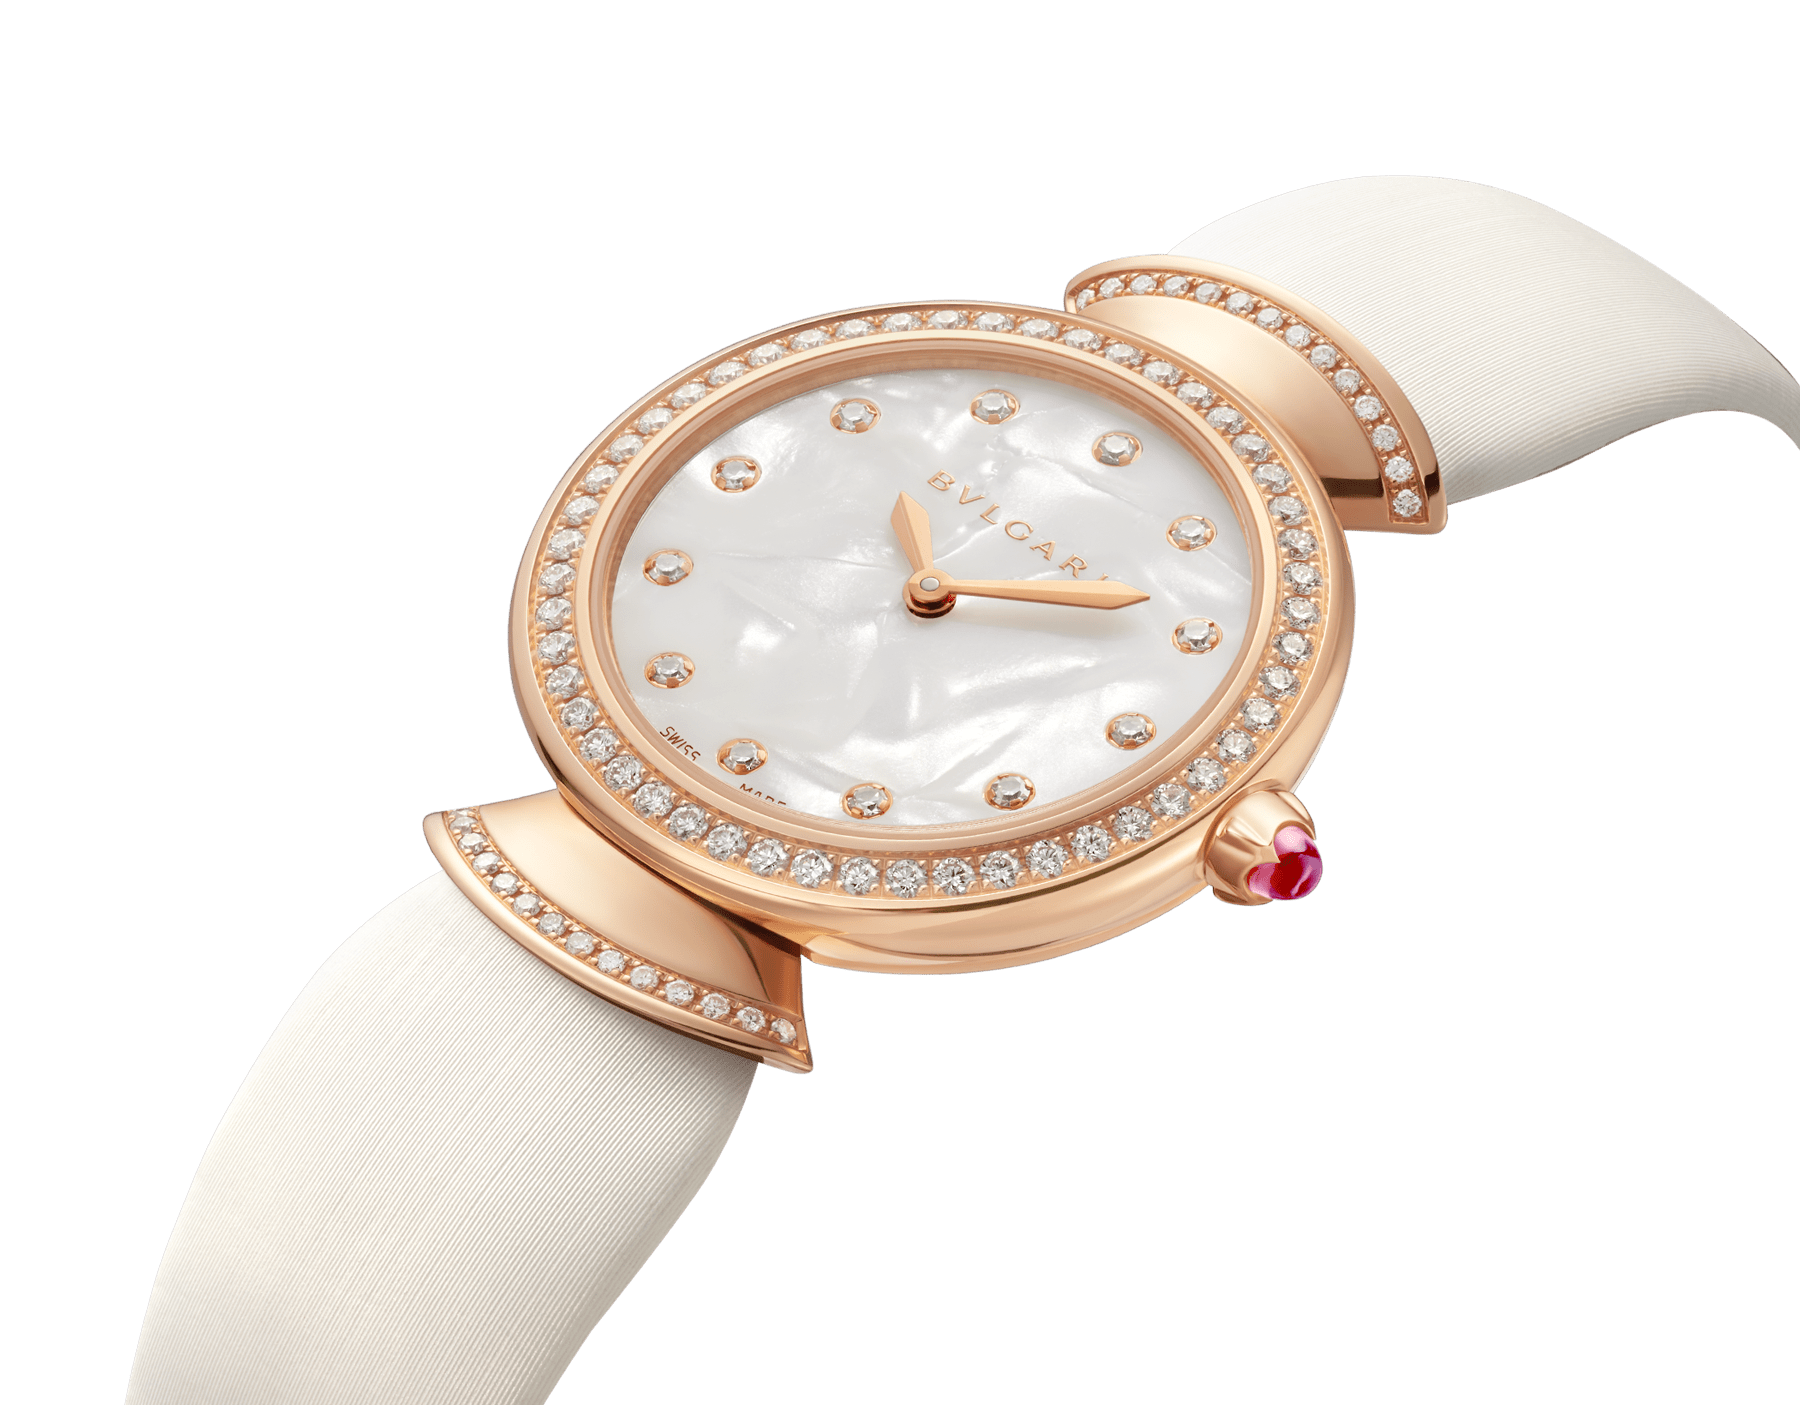 DIVAS' DREAM watch with 18 kt rose gold case set with brilliant-cut diamonds, natural acetate dial, diamond indexes and white satin bracelet 102433 image 2